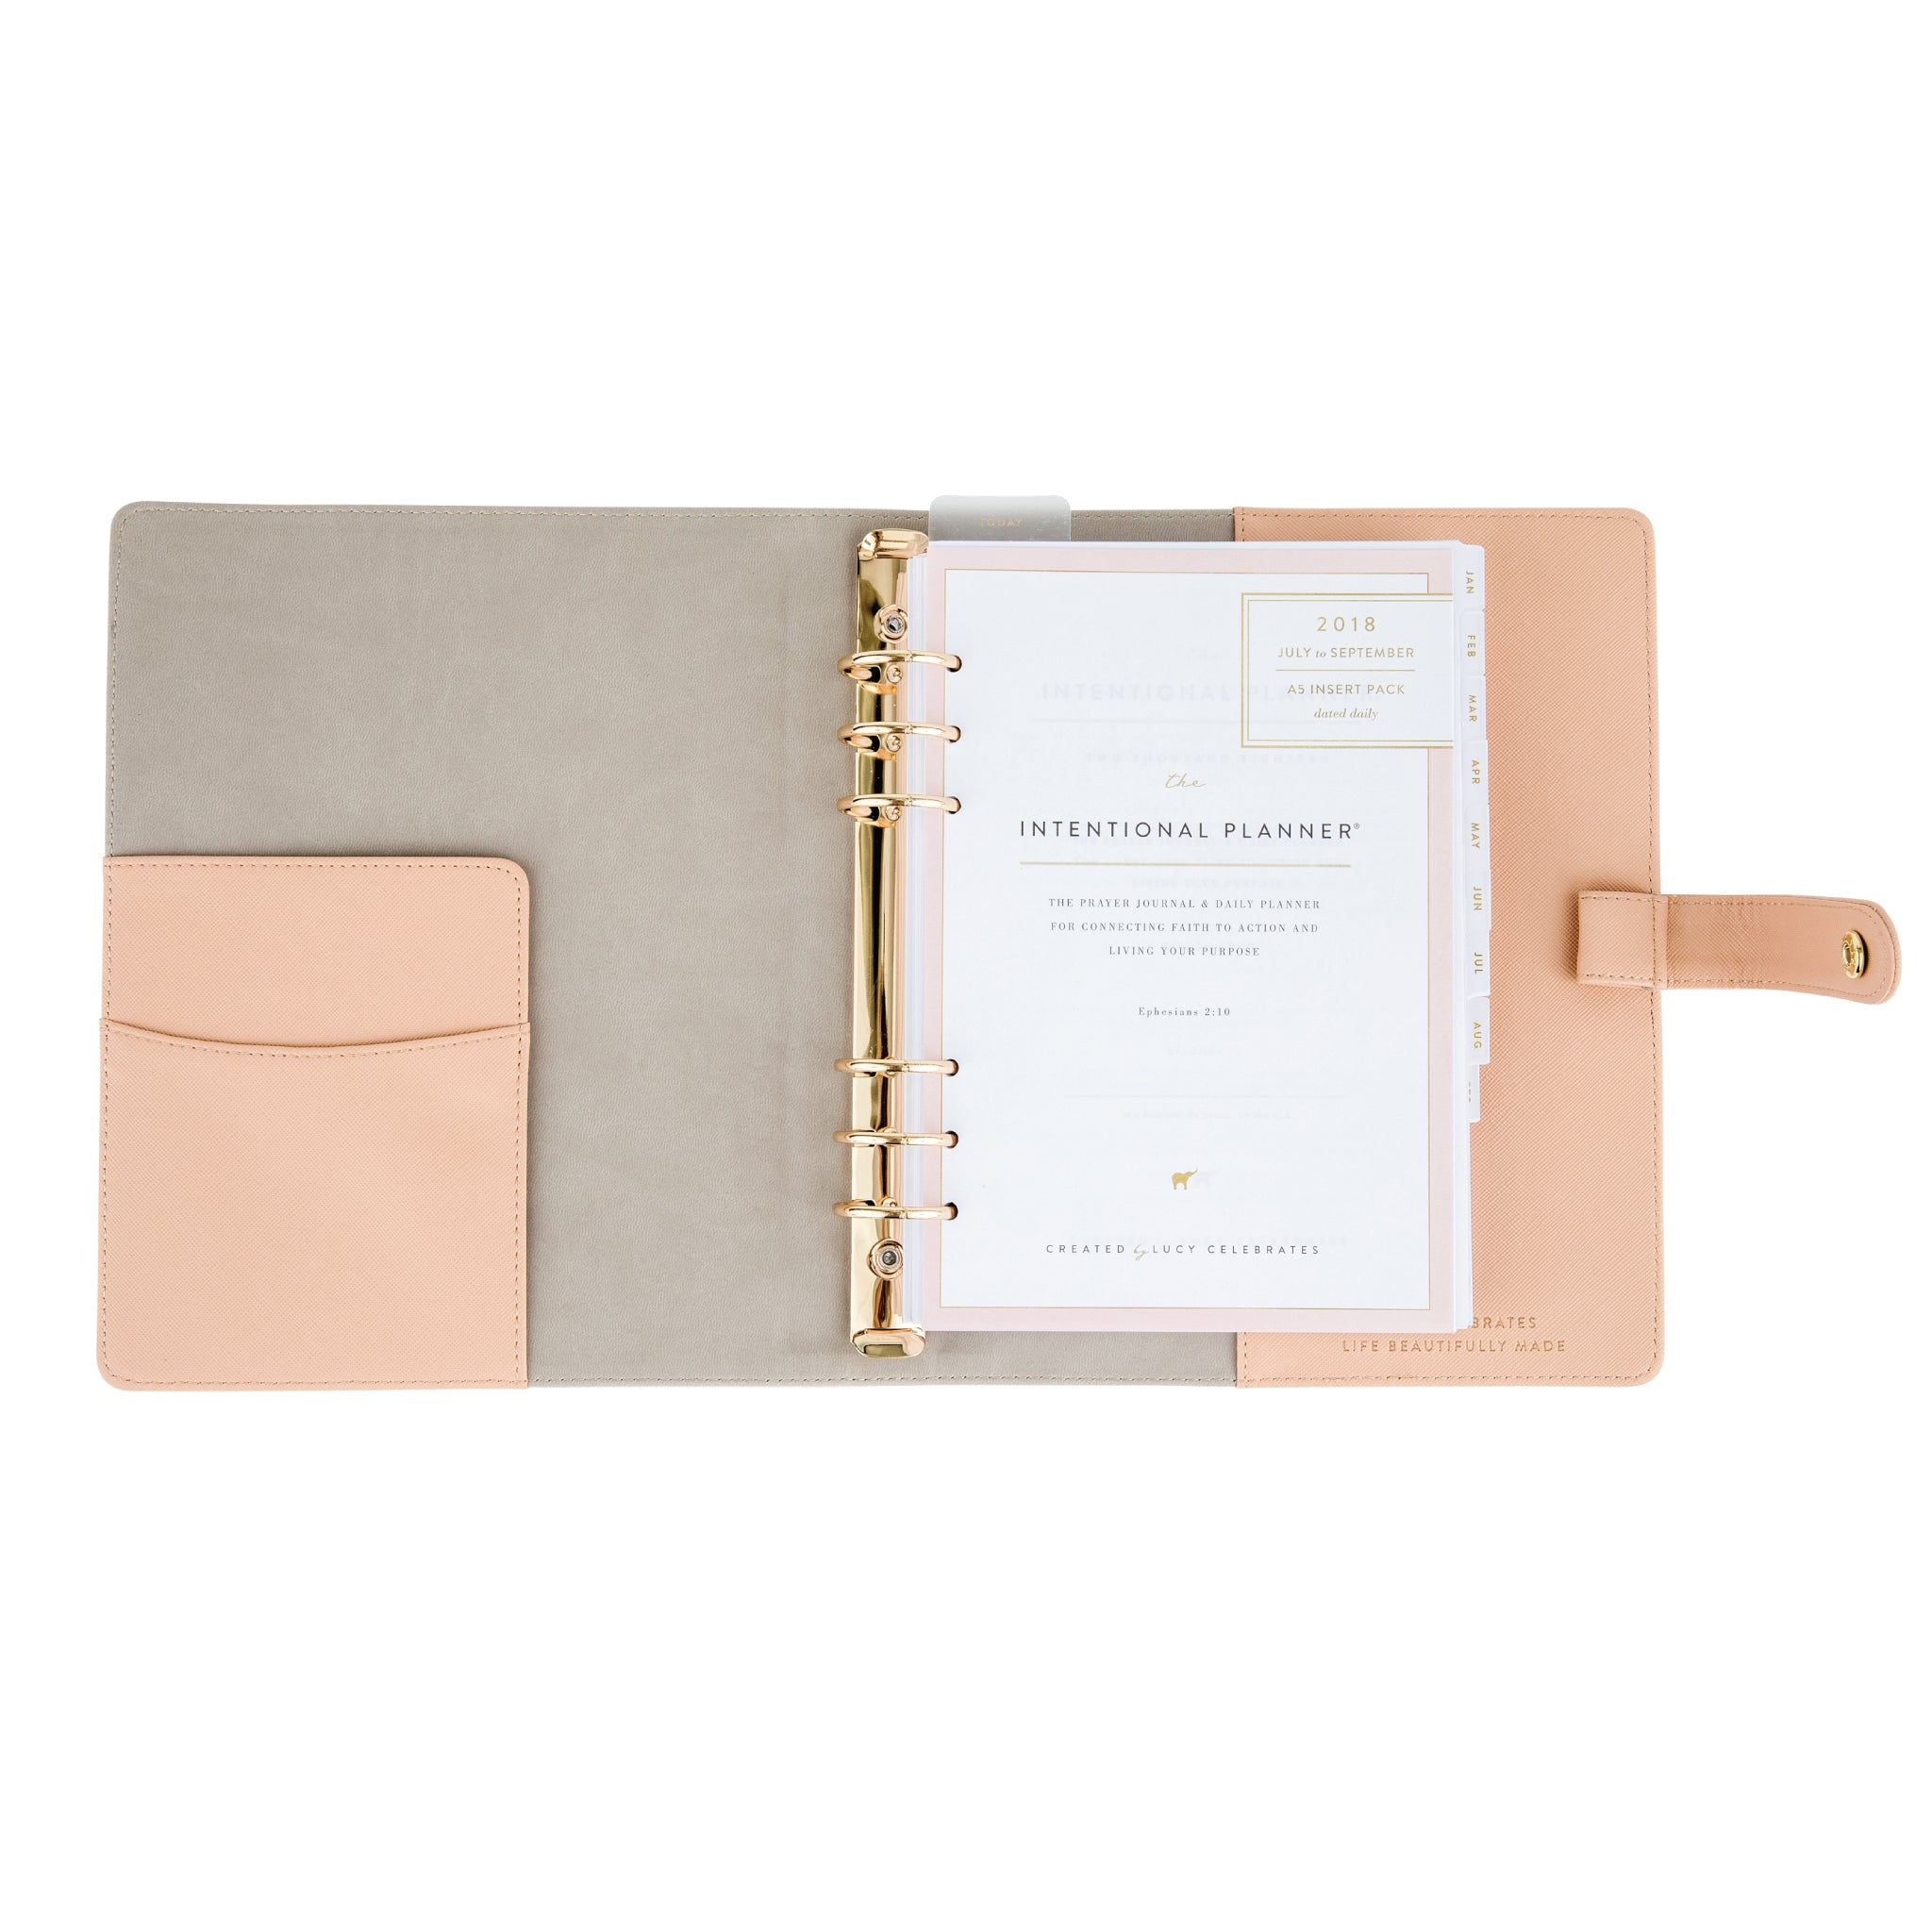 2020 Intentional Planner® Blush Bundle, Dated Daily